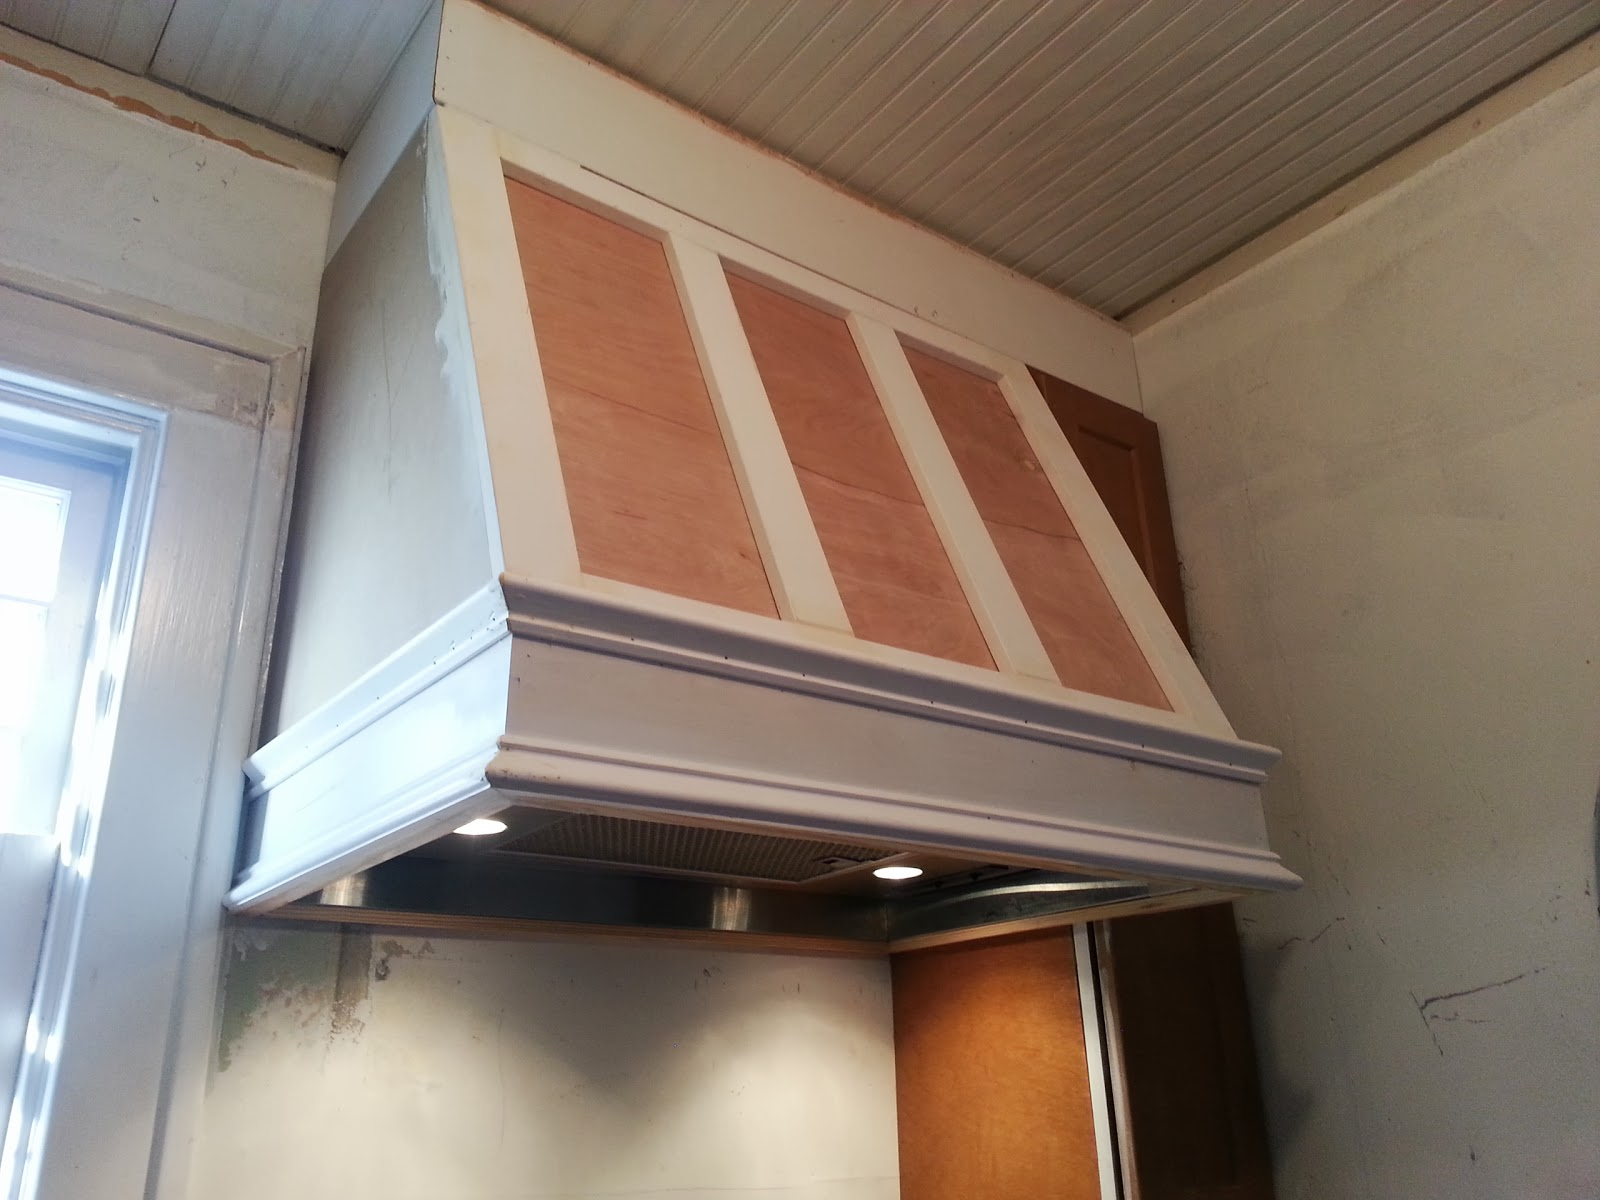 Confessions of a diy aholic how to build a shaker style range hood solutioingenieria Choice Image